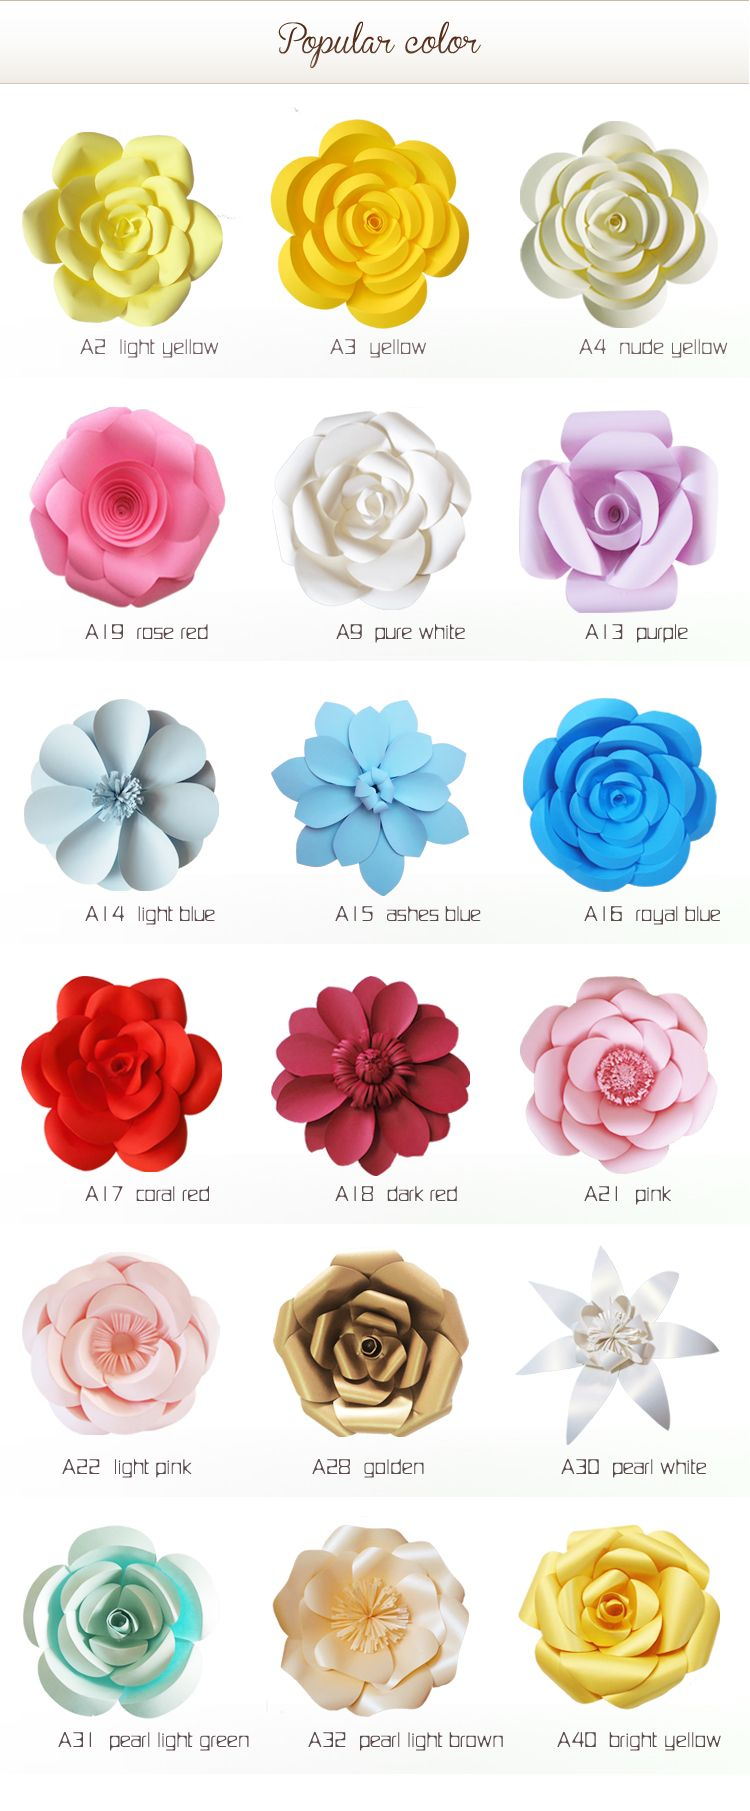 Decorative shopping mall artificial flowers wfah 05 buy decorative shopping mall artificial flowers wfah 05 buy christmas artificial flowers decorationspaper flowers wholesaleartifical flowers for wedding mightylinksfo